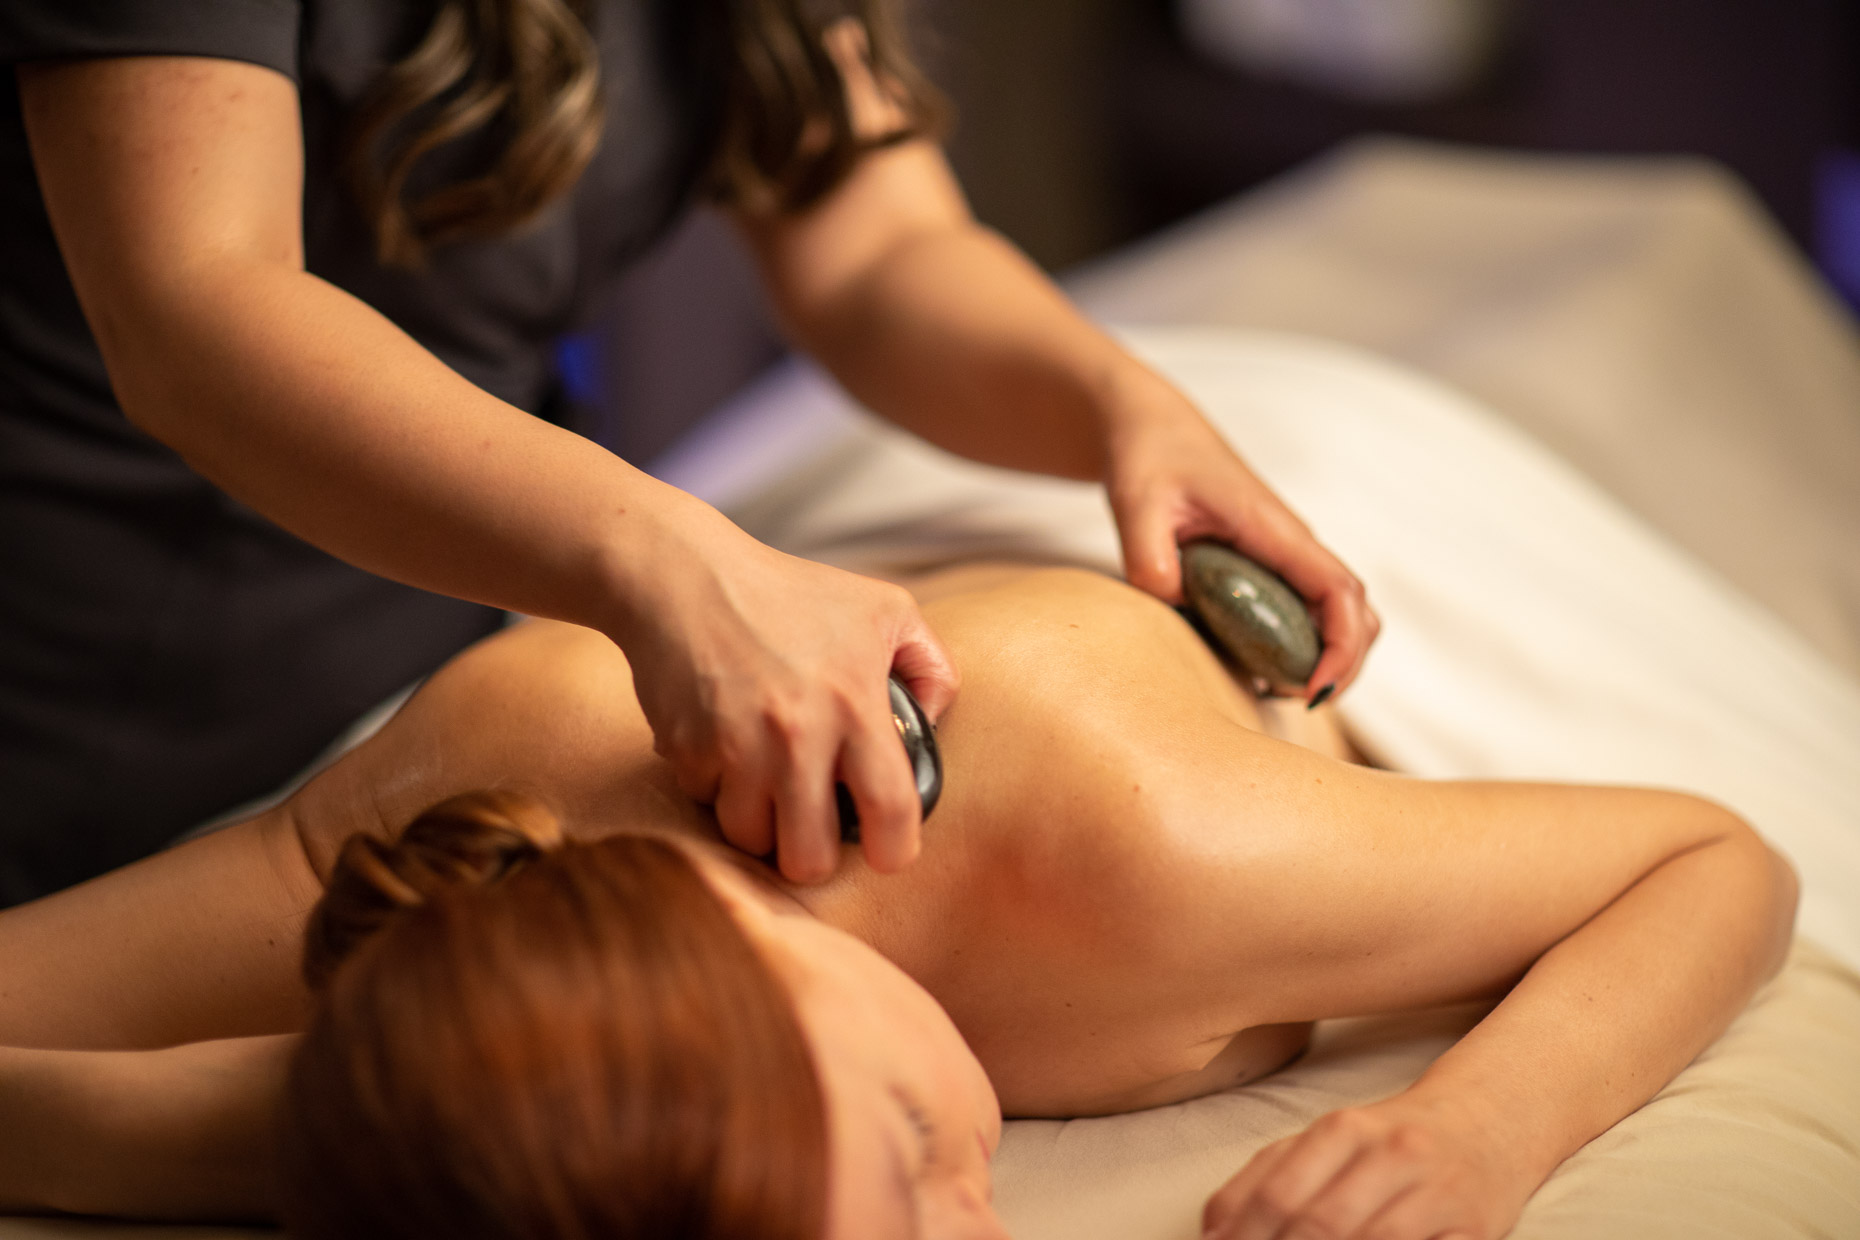 Woman enjoys a stone massage in a spa